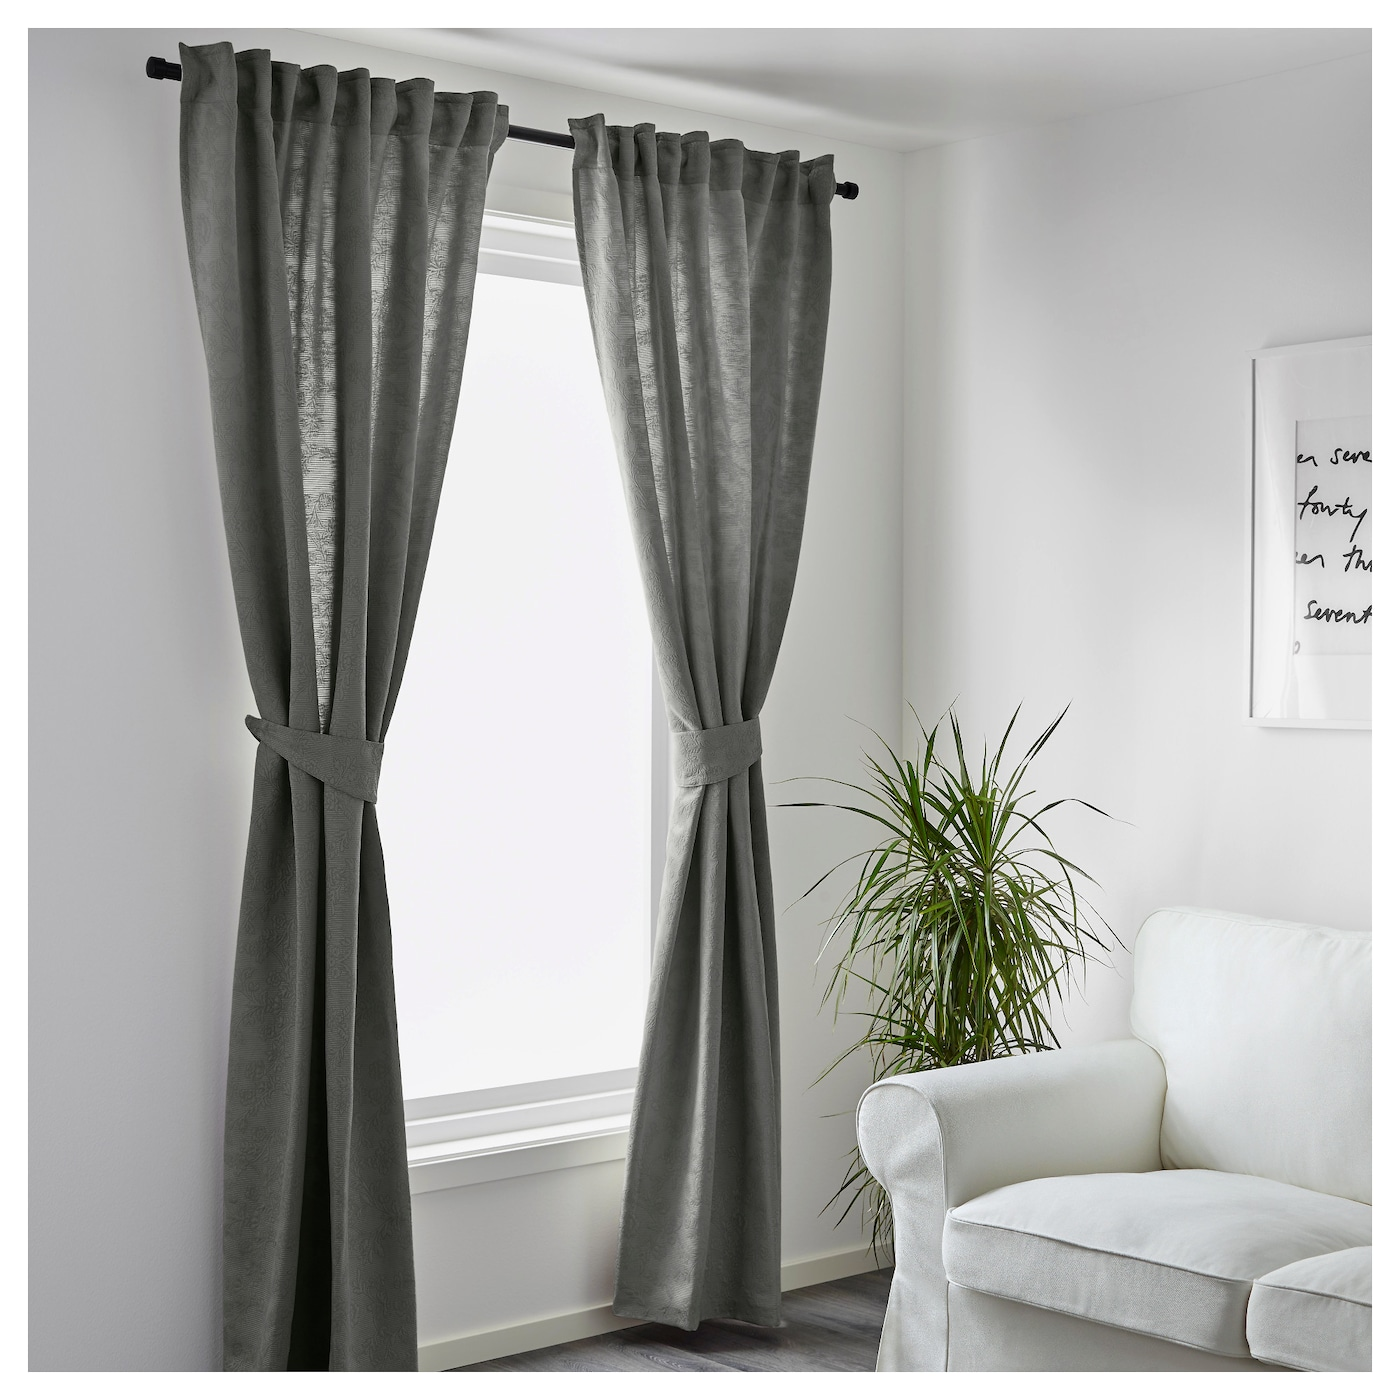 blekviva curtains with tie backs 1 pair grey 145x250 cm. Black Bedroom Furniture Sets. Home Design Ideas